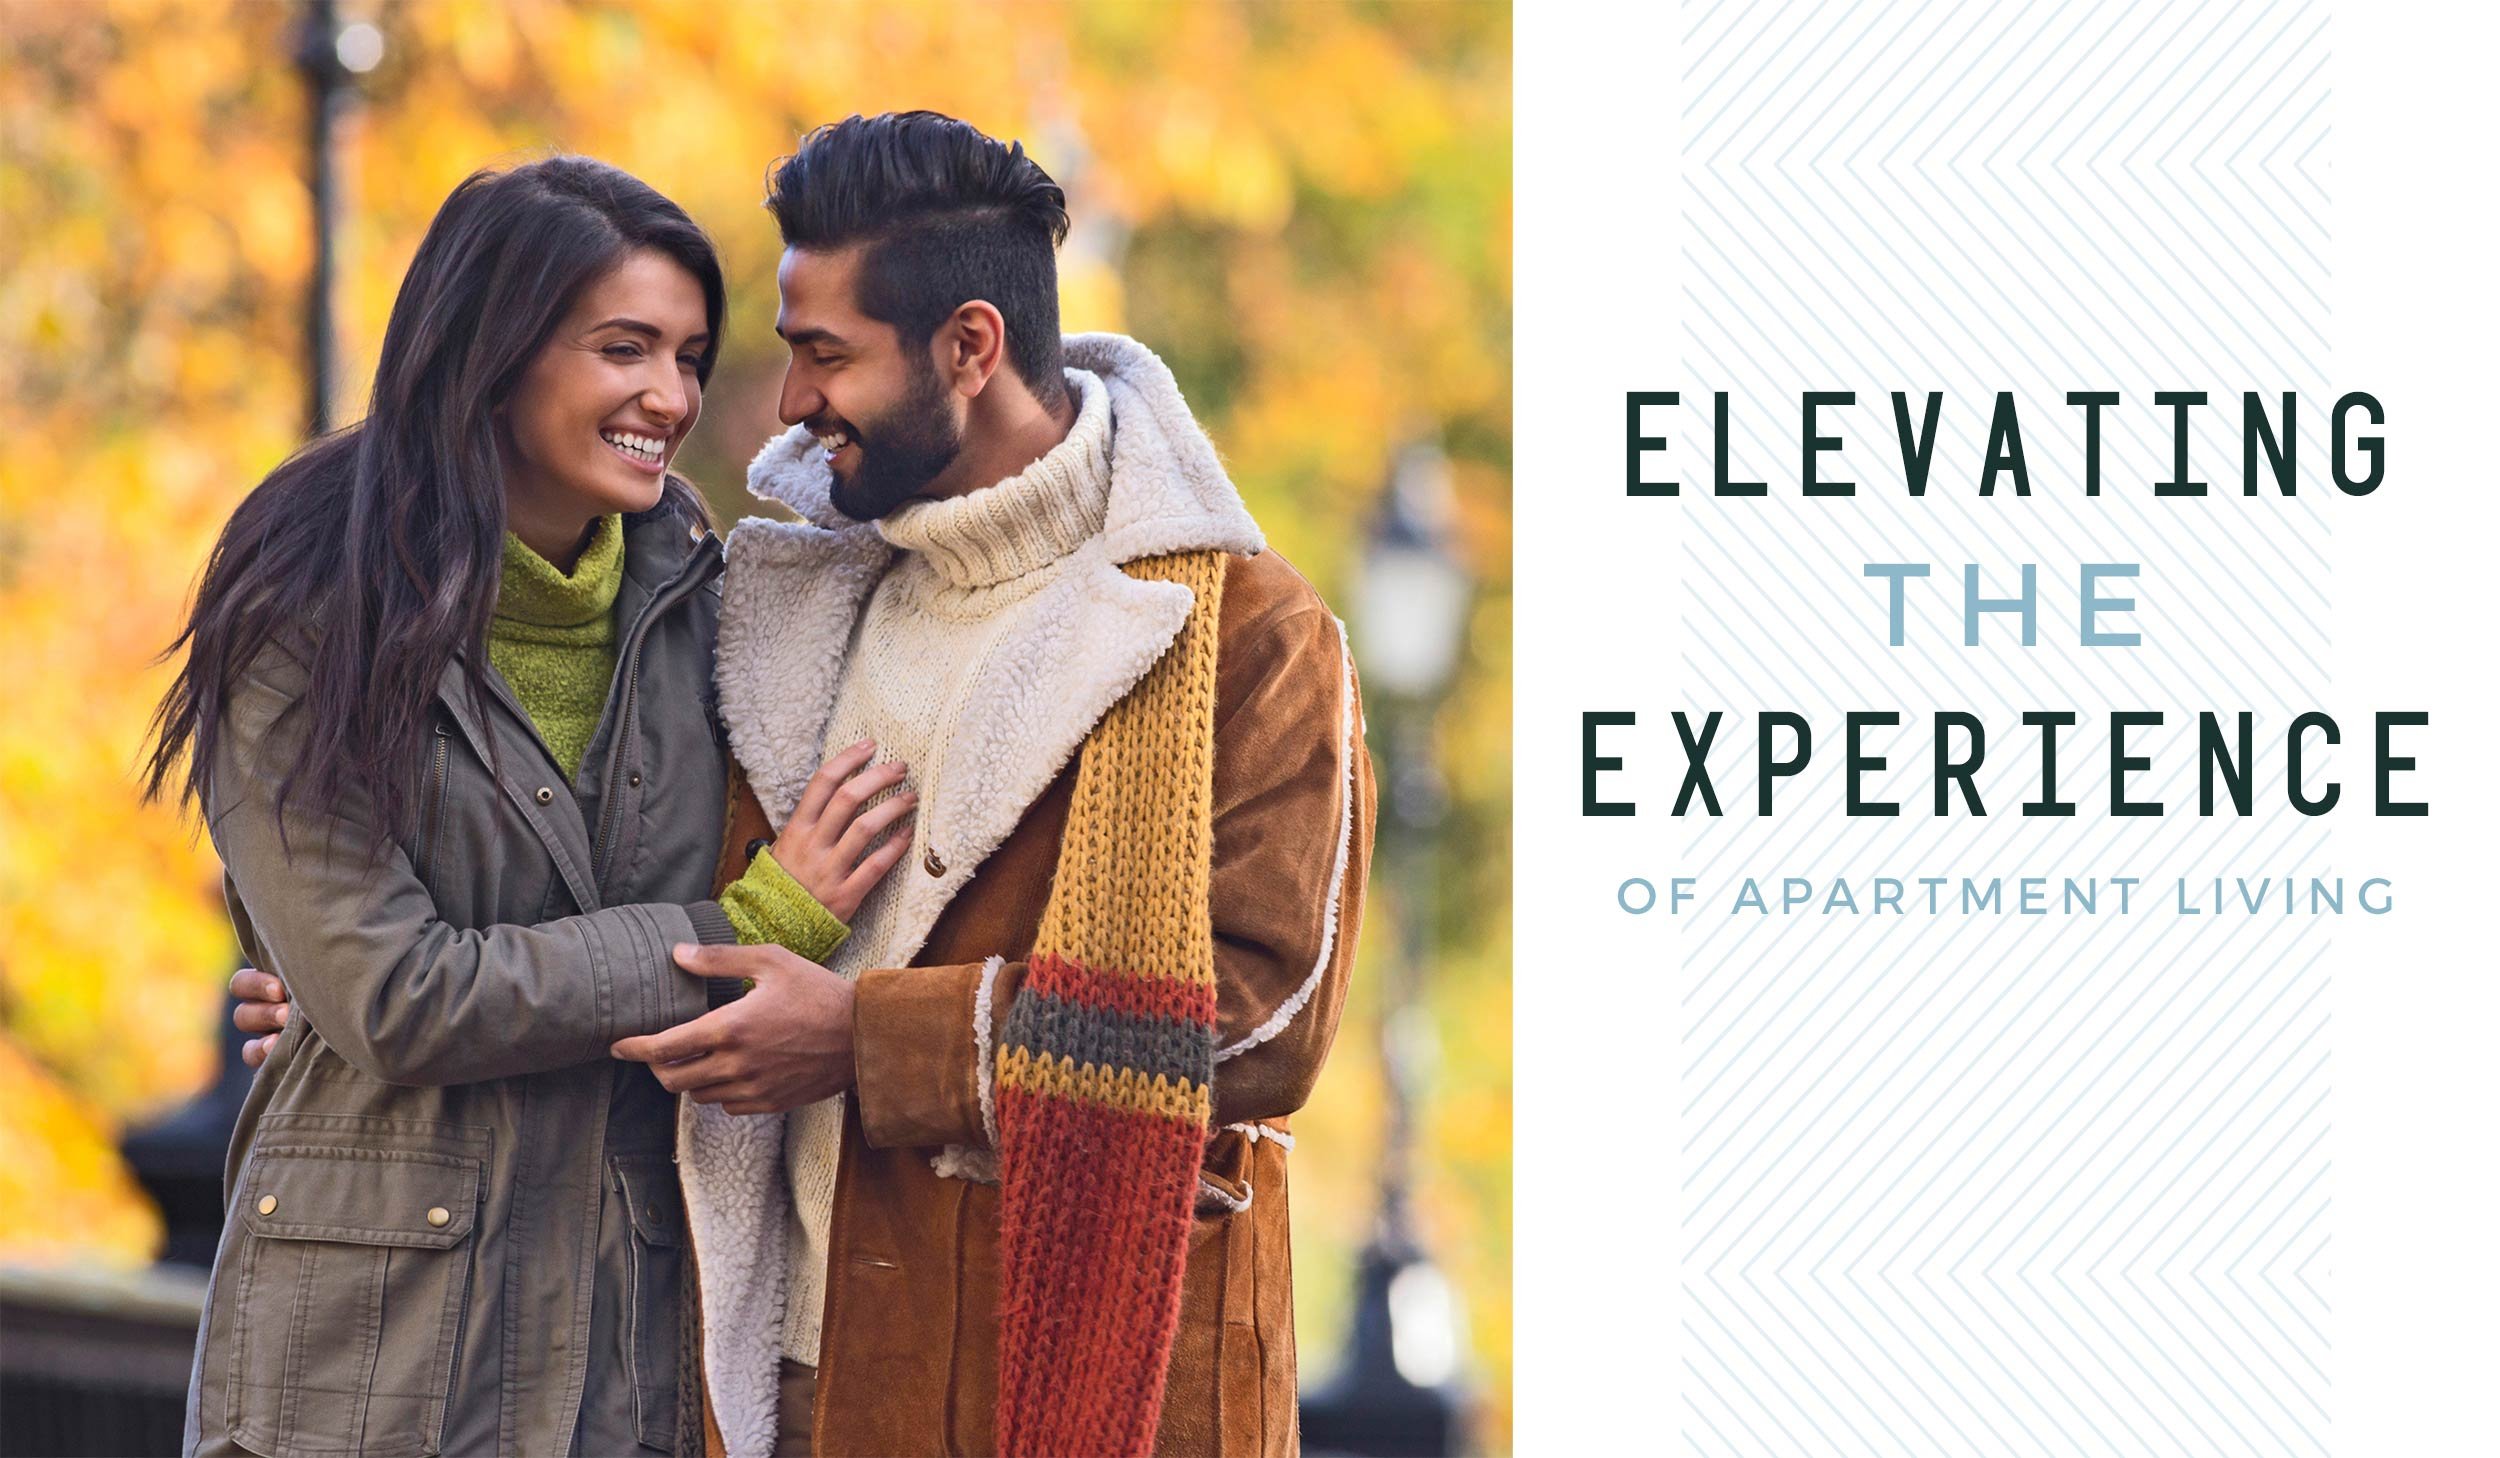 split image with photo of smiling couple holding each other while walking with fall leaves in the background on the left and a white rectangle with light blue lines and overlaid text that reads, Elevating the experience of apartment living on the right